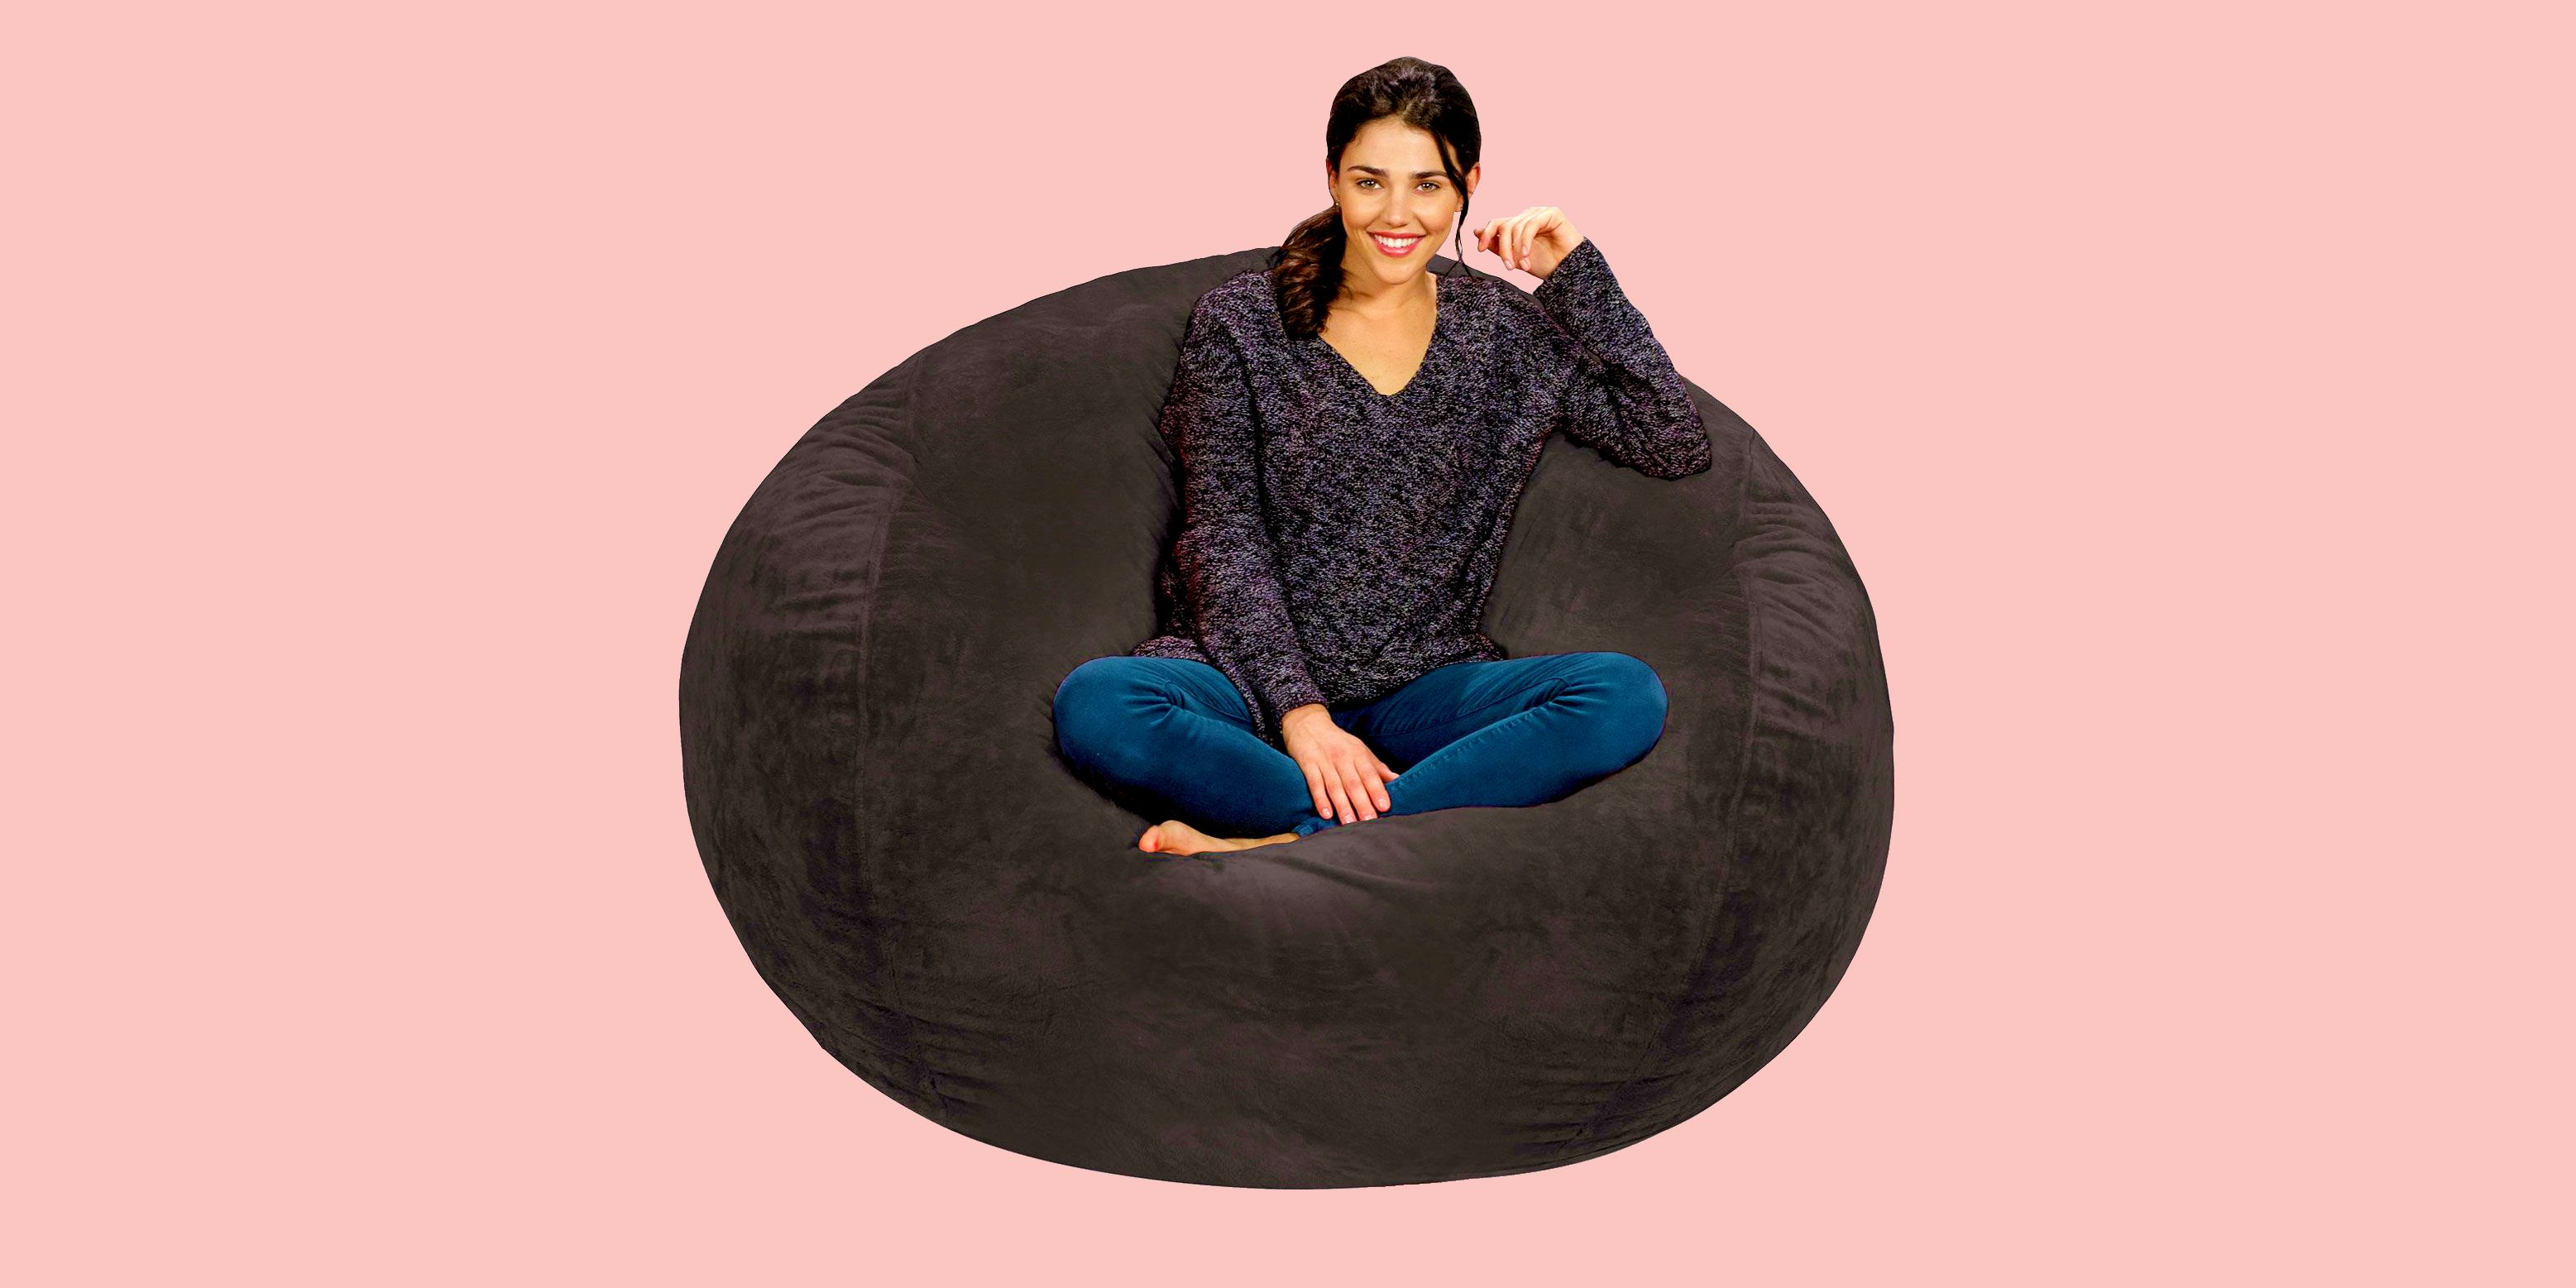 This 5-Foot Bean Bag Chair Has Nearly 800 5-Star Reviews; Here's Why